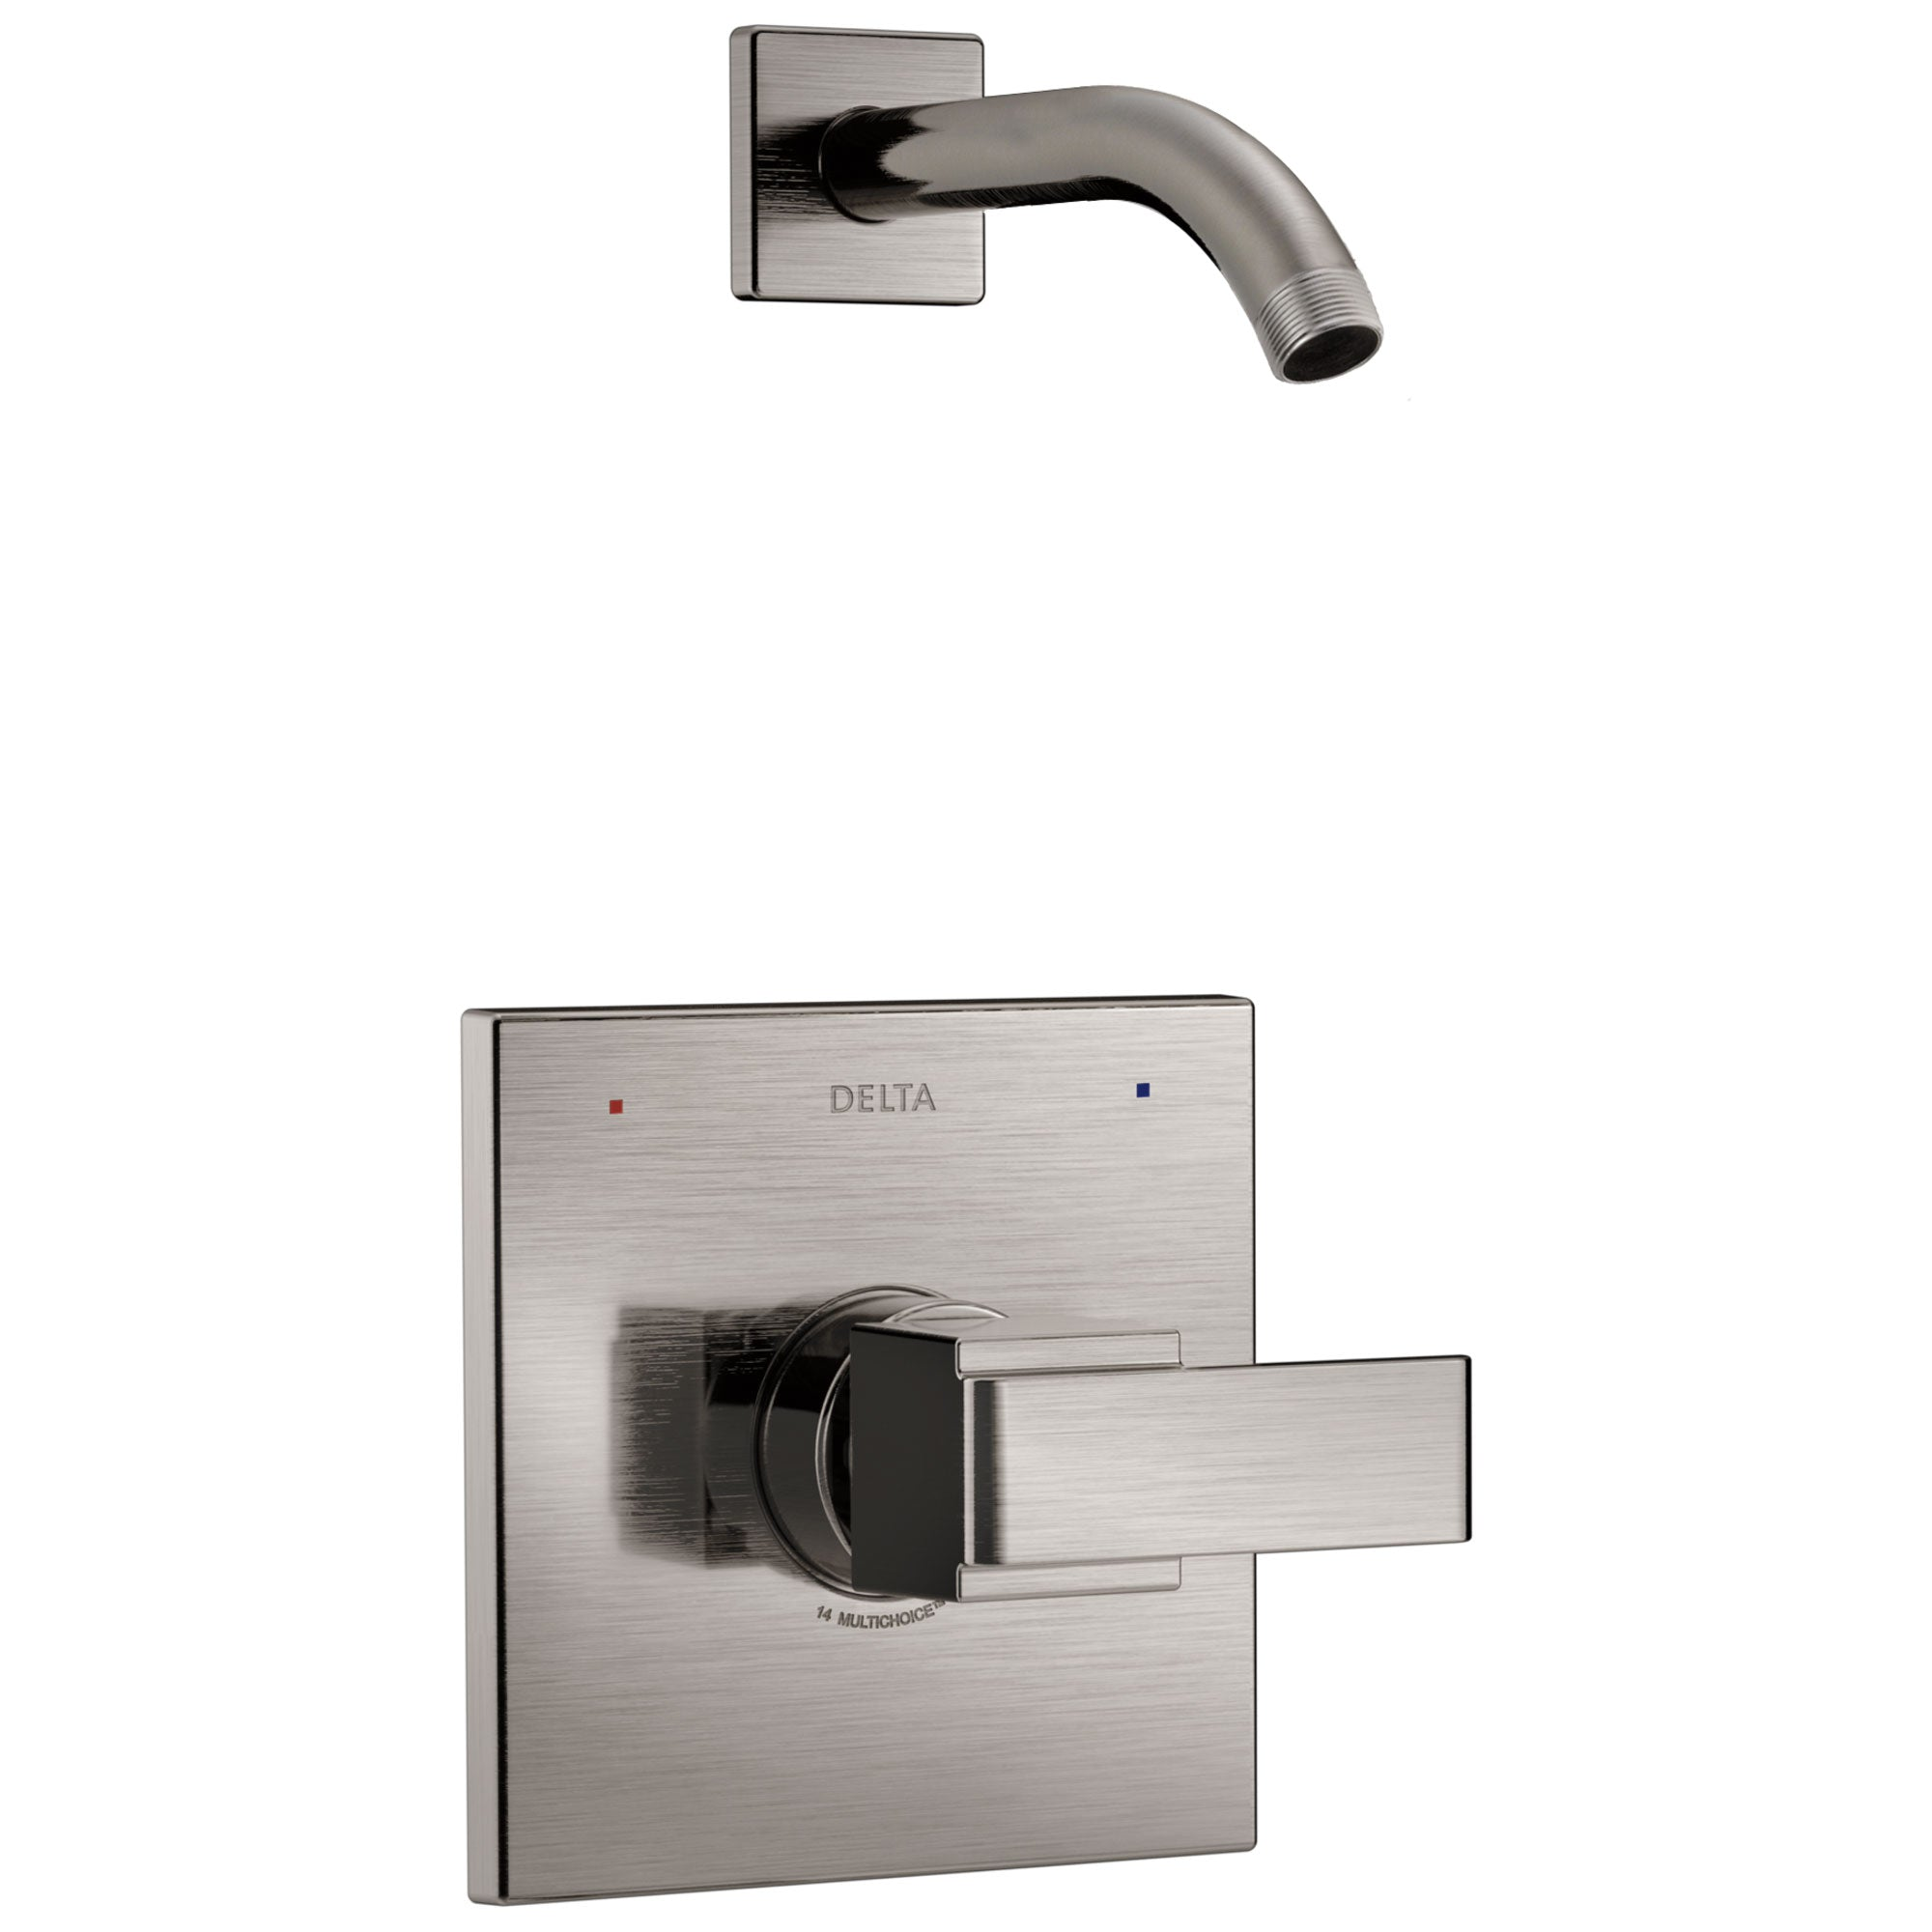 Delta Ara 1-Handle Shower Faucet Trim Kit in Stainless Steel Finish with Less Showerhead Includes Rough-in Valve without Stops D2562V